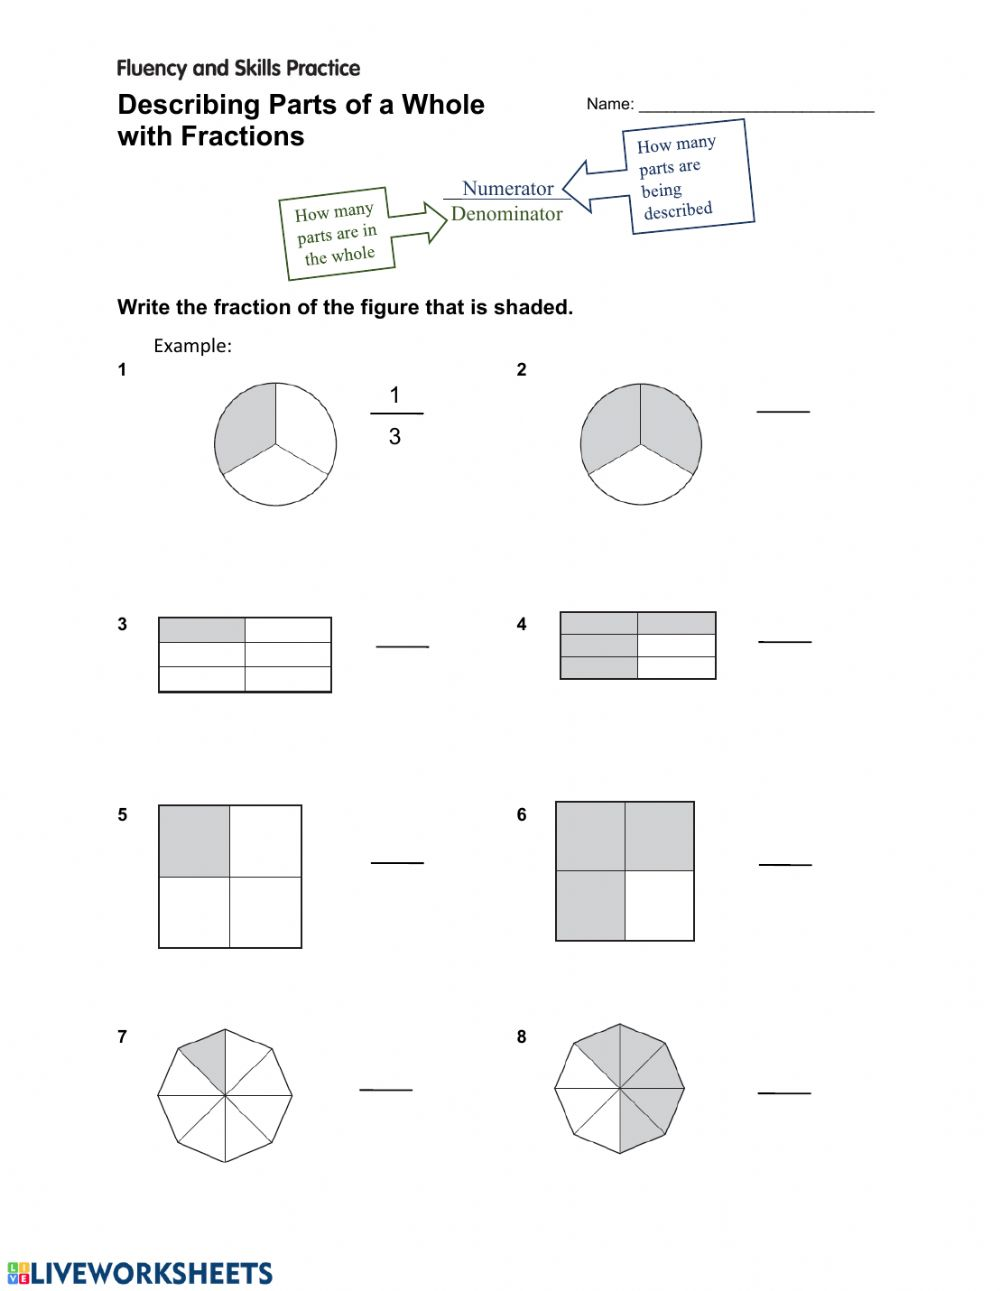 Describing Parts of a Whole with Fractions - Interactive ...